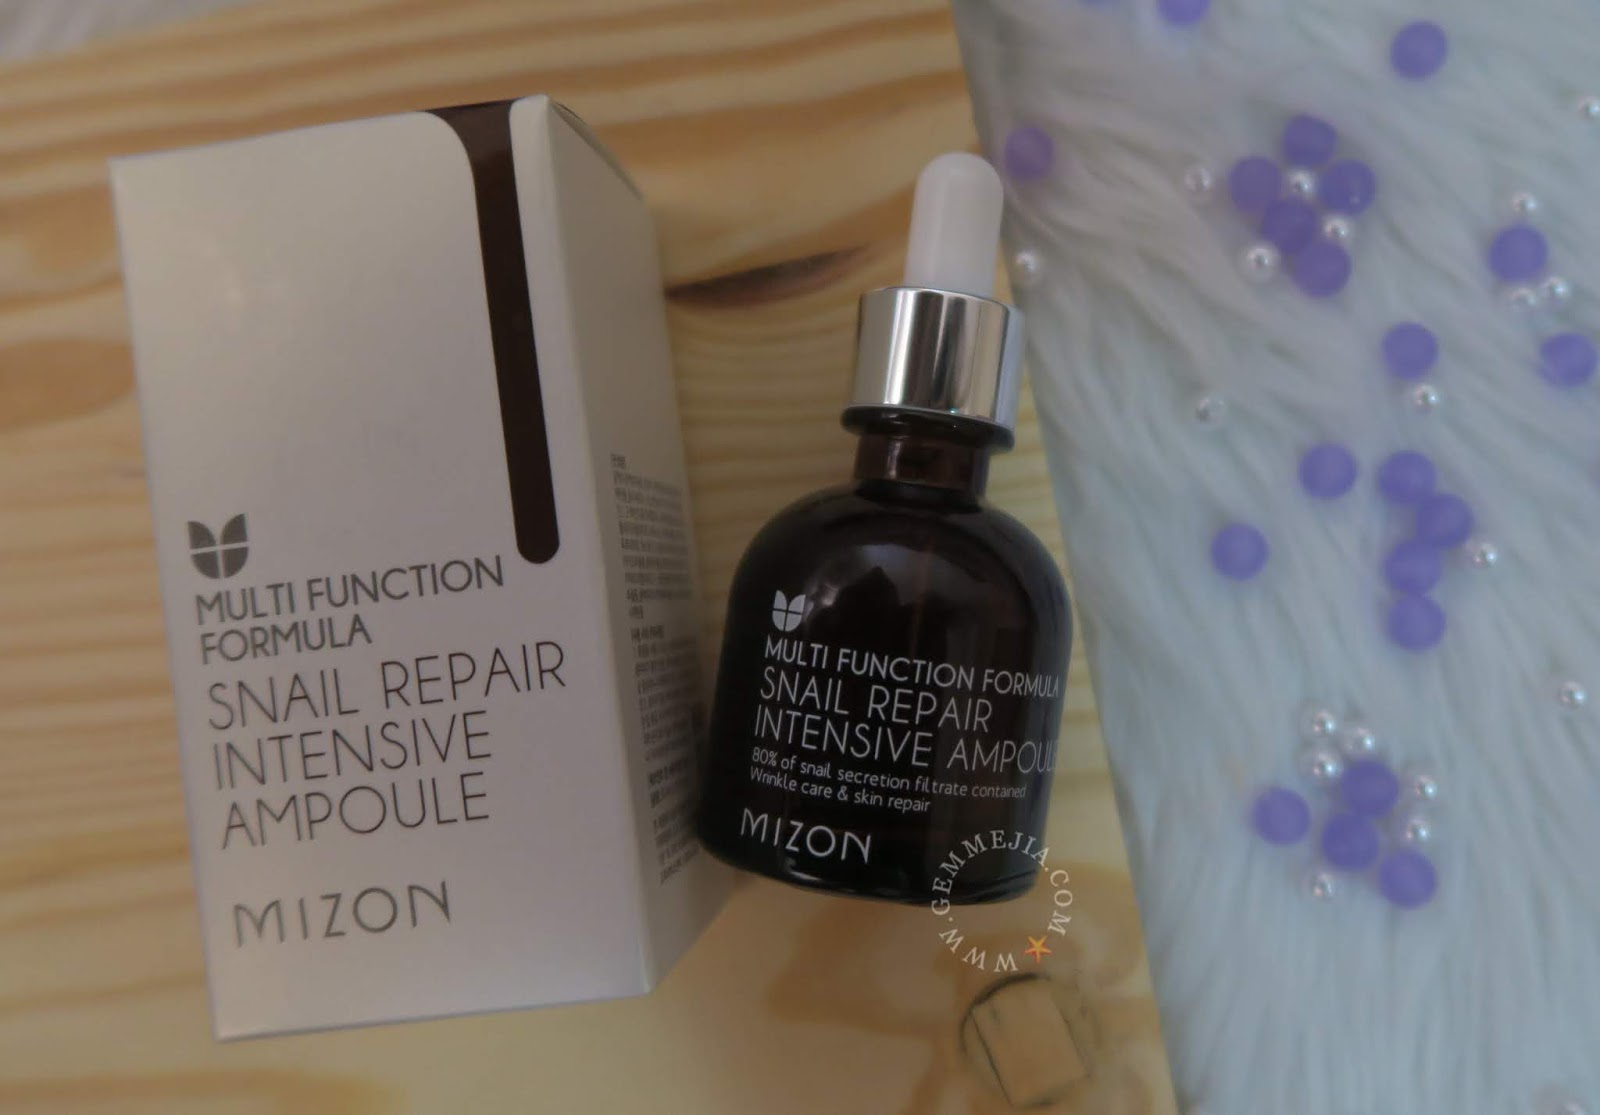 Mizon Snail Repair Intense Ampoule Gemmybear Intensive 30ml This Weeks Star Is The Has Been On Market For A Long Time But It Still Never Too Late Me To Try